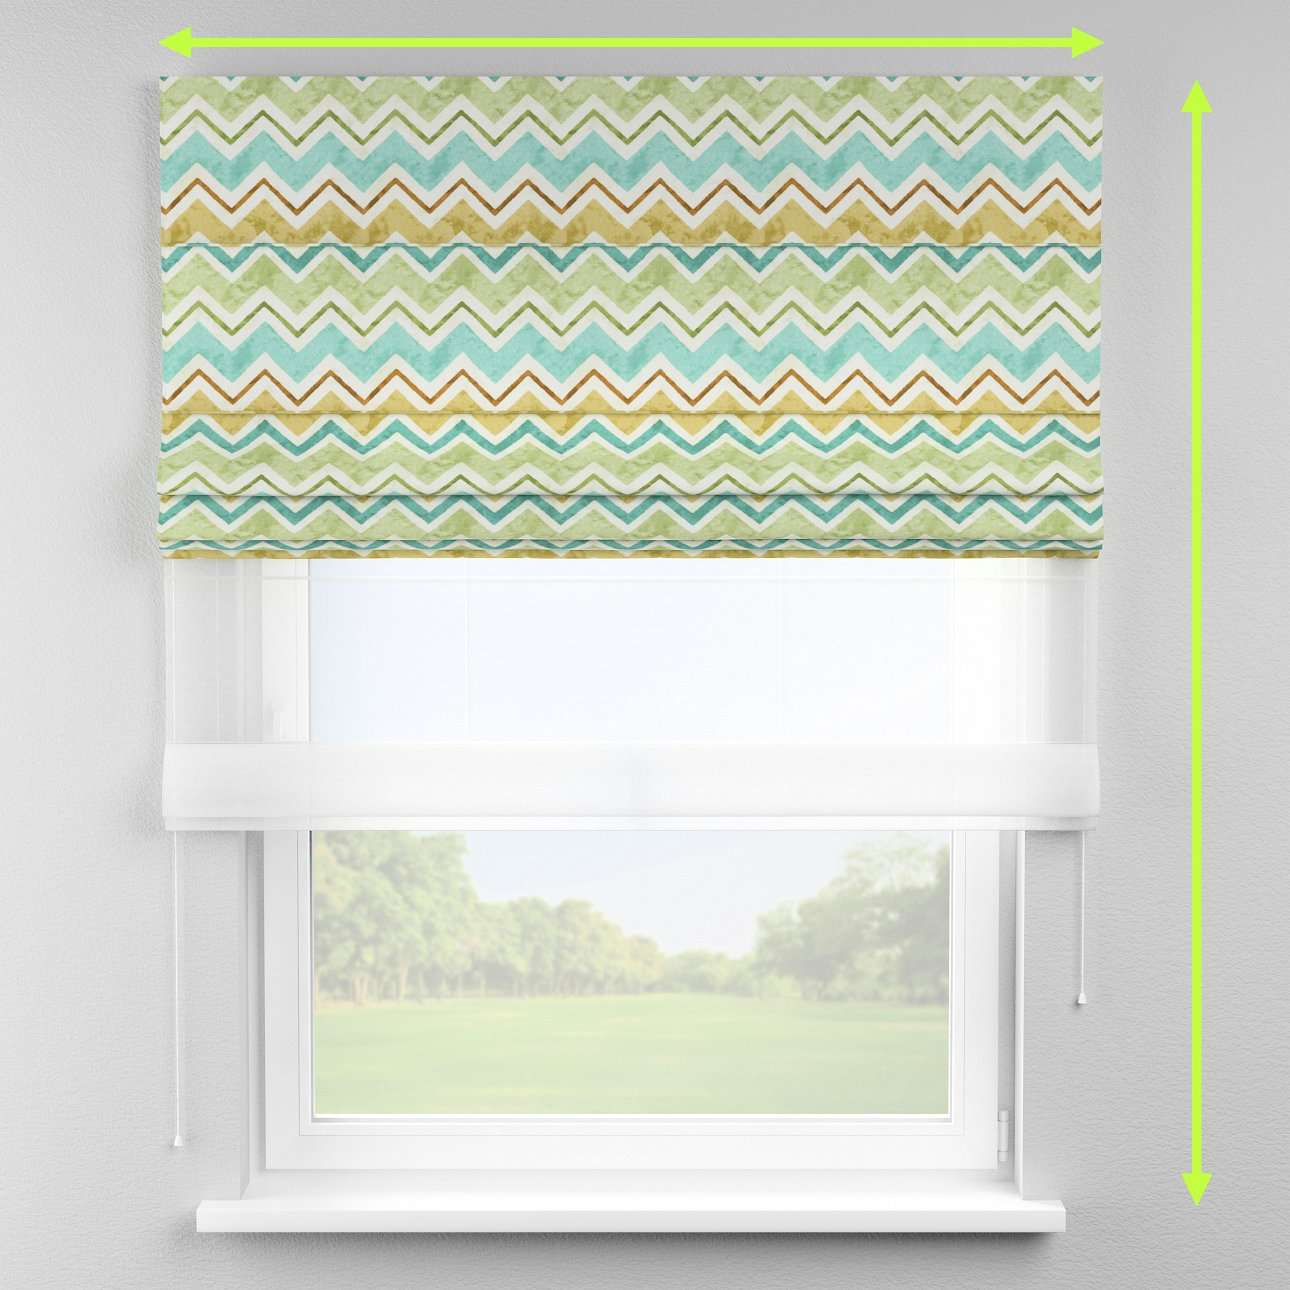 Voile and fabric roman blind (DUO II) in collection Acapulco, fabric: 141-41